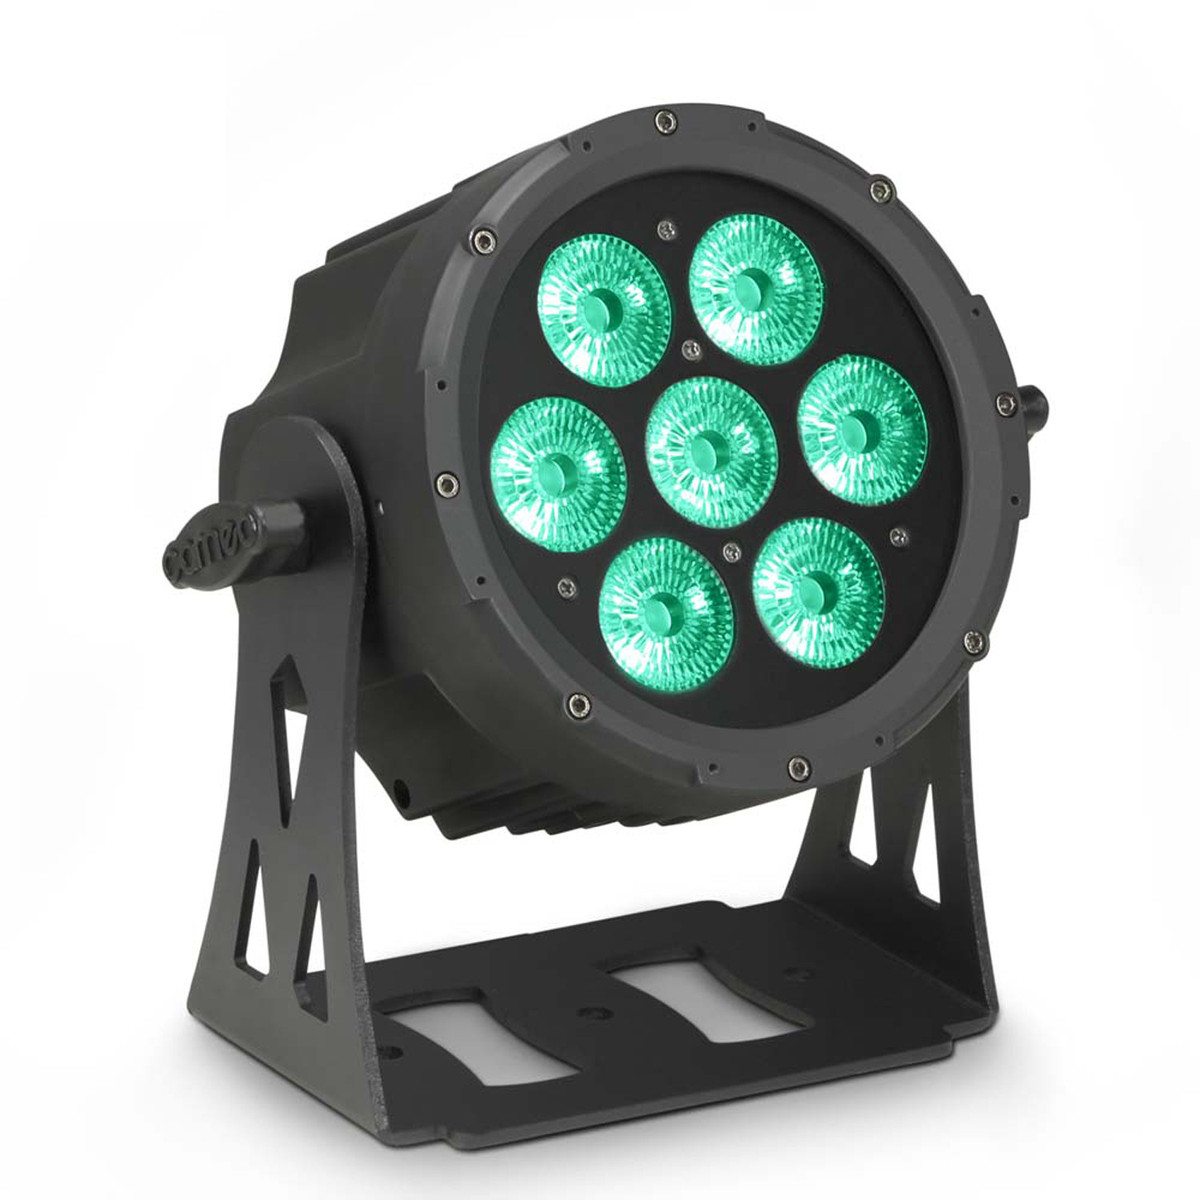 Cameo Flat Pro 7 Ip65 X 10w Rgbwa Led Outdoor Par Light Black At Flood Floodlight Lamp High Power Case With 1m Cable Wire Loading Zoom